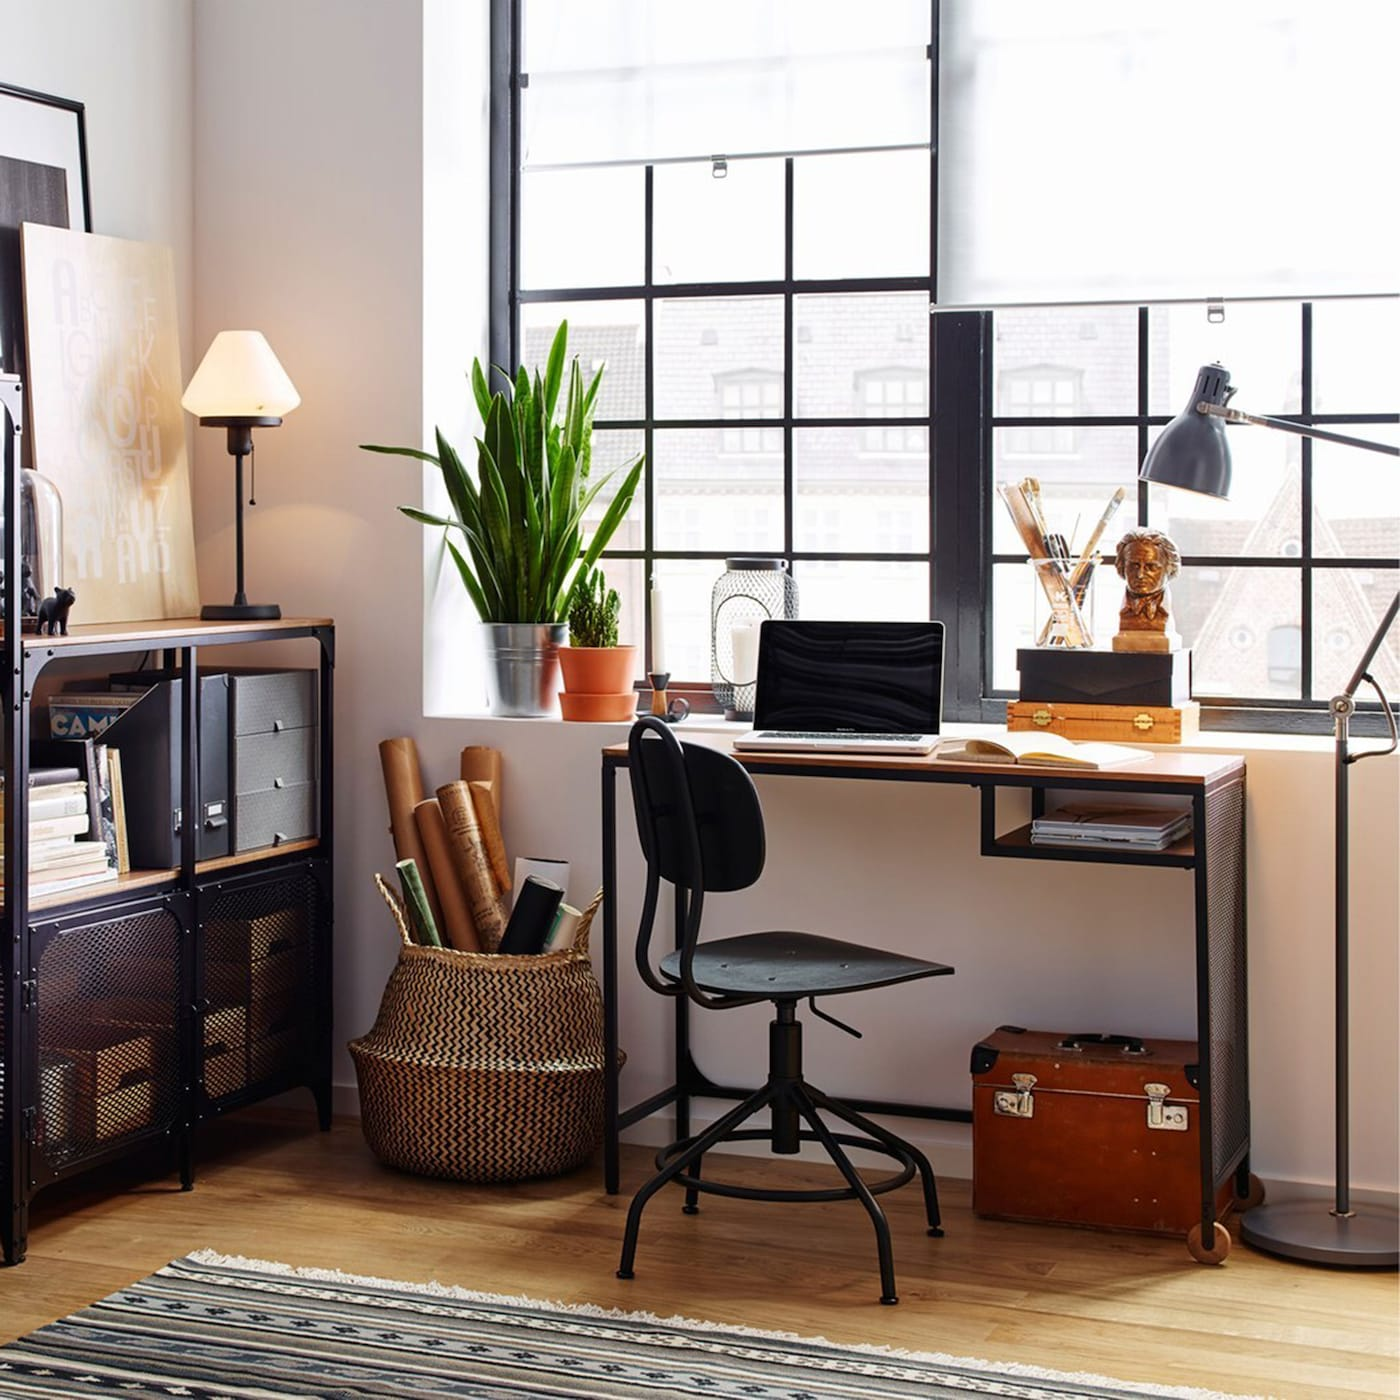 White workspace with wood floors and industrial style FJÄLLBO black metal and wood shelving and desk, by a window.